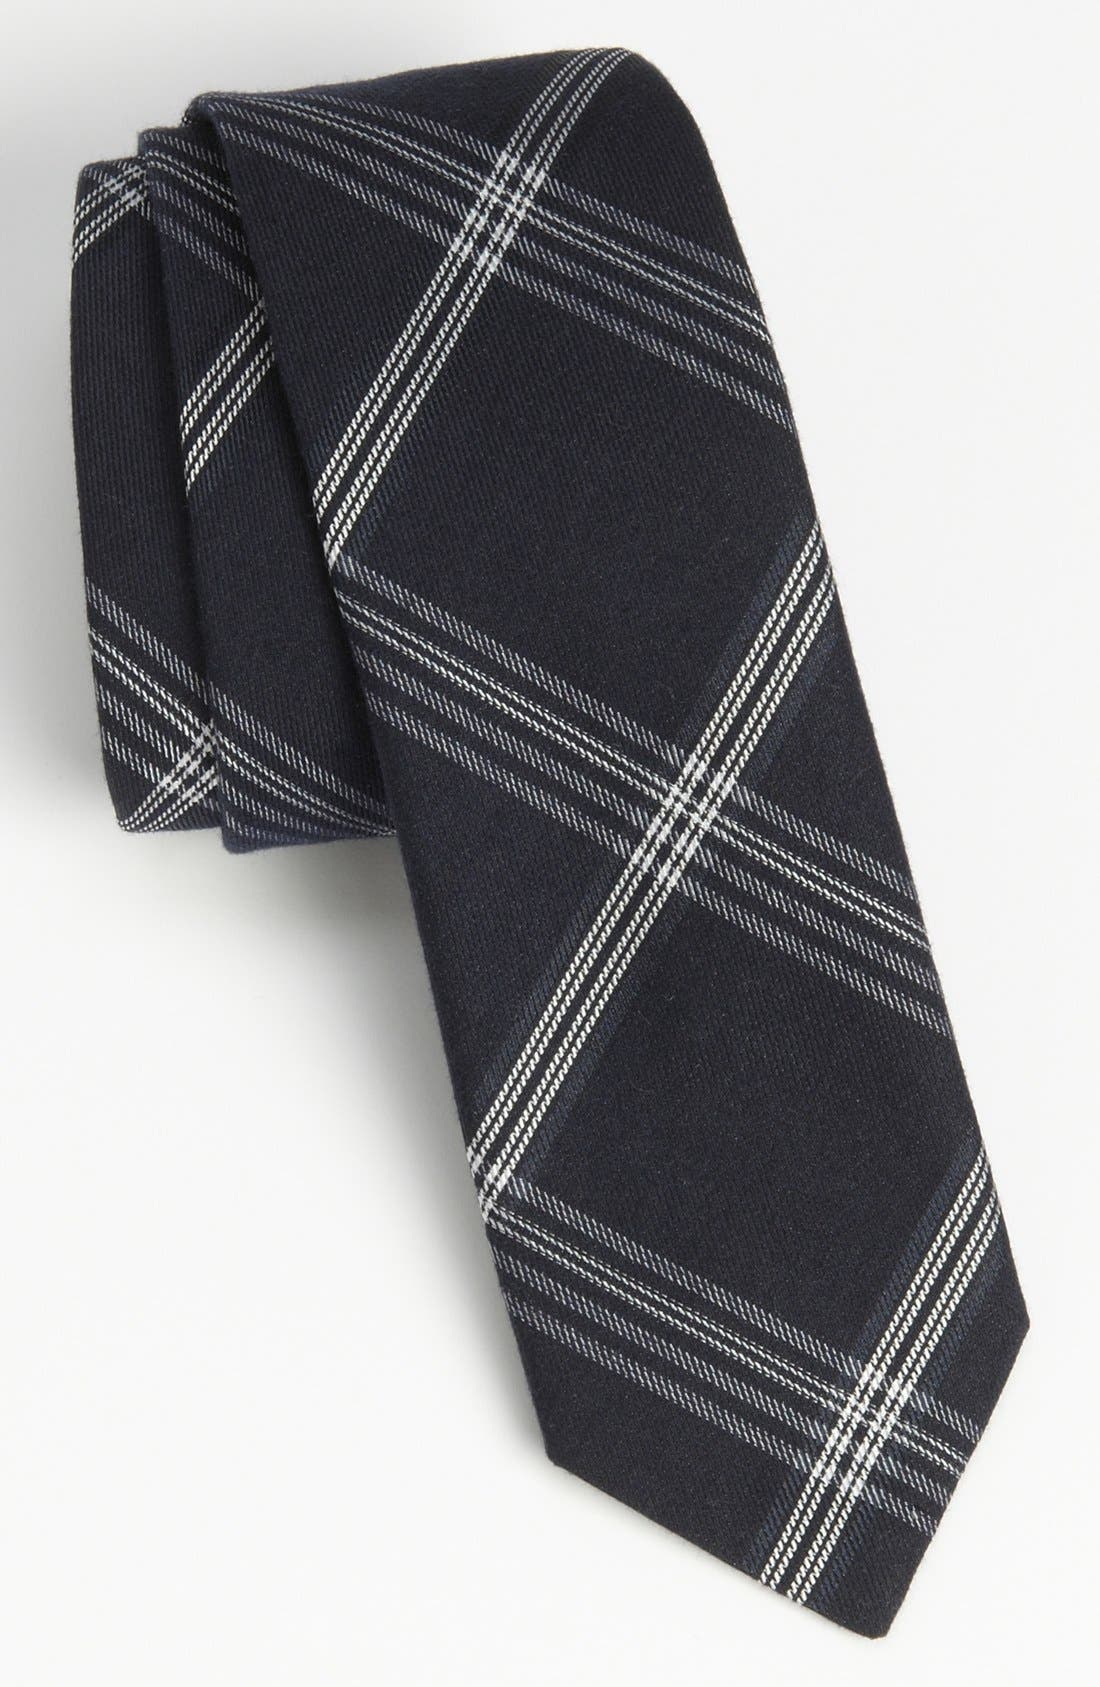 Main Image - BOSS HUGO BOSS Woven Silk Blend Tie